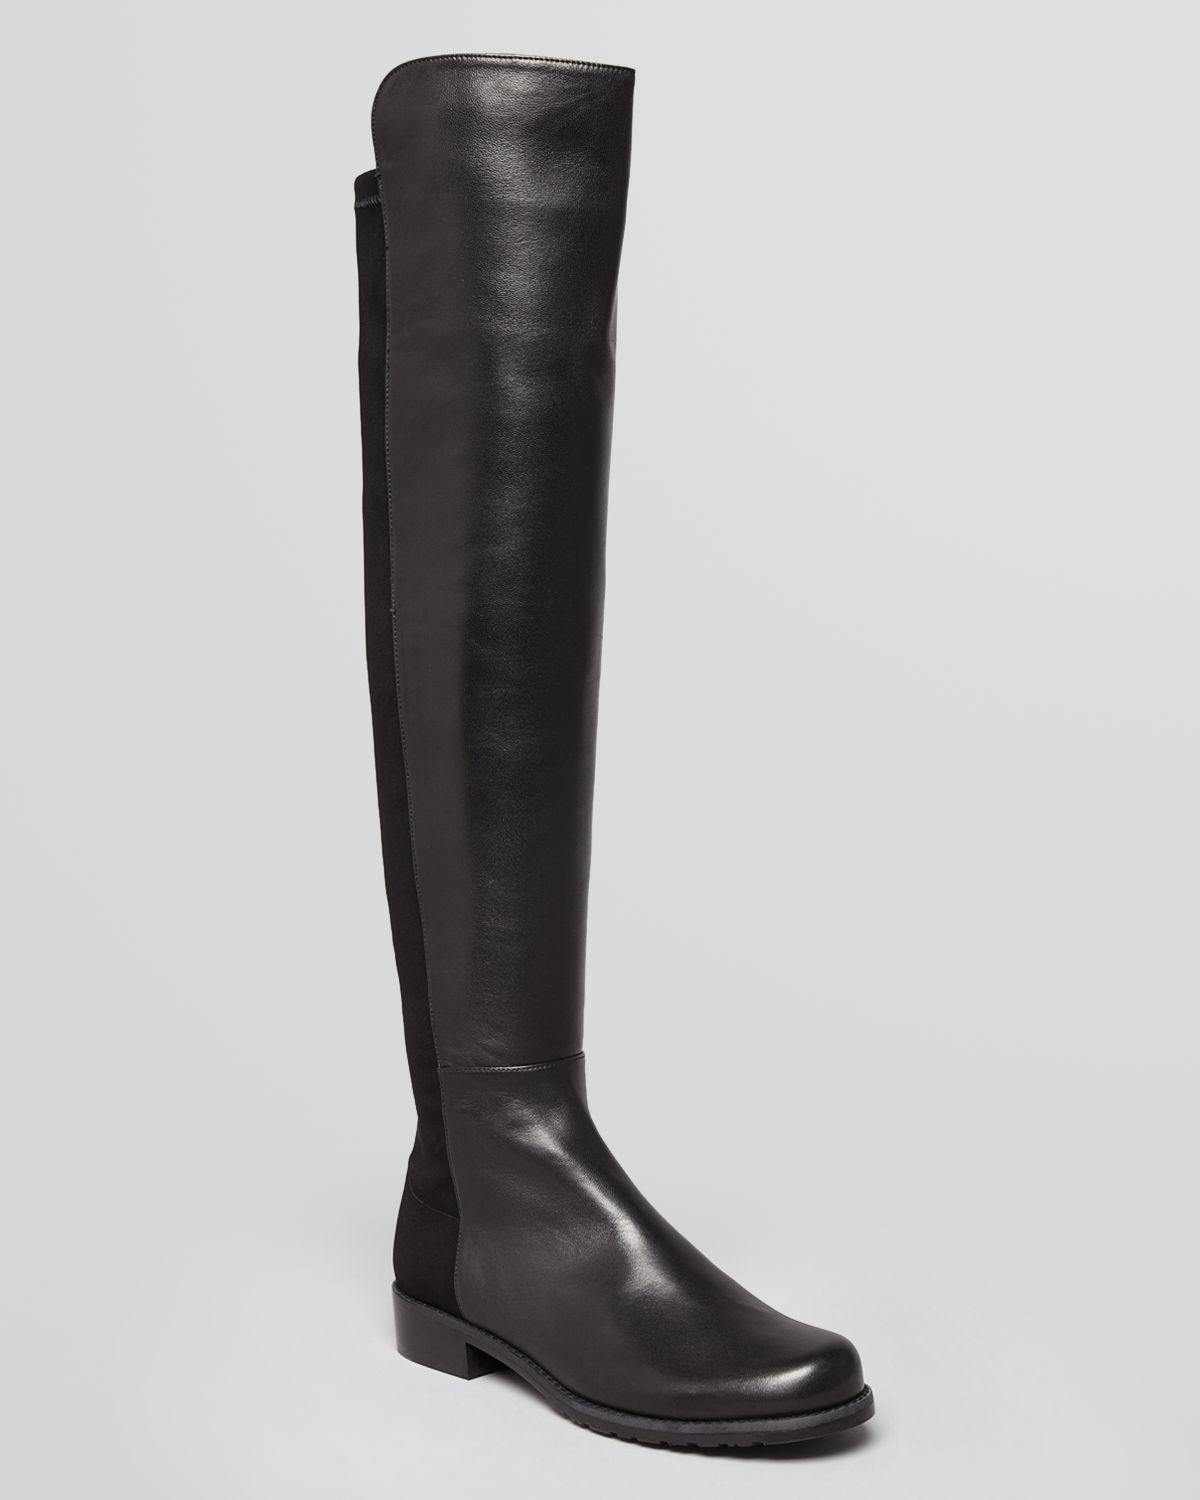 Stuart Weitzman Boots - 5050 Over The Knee | Bloomingdale's